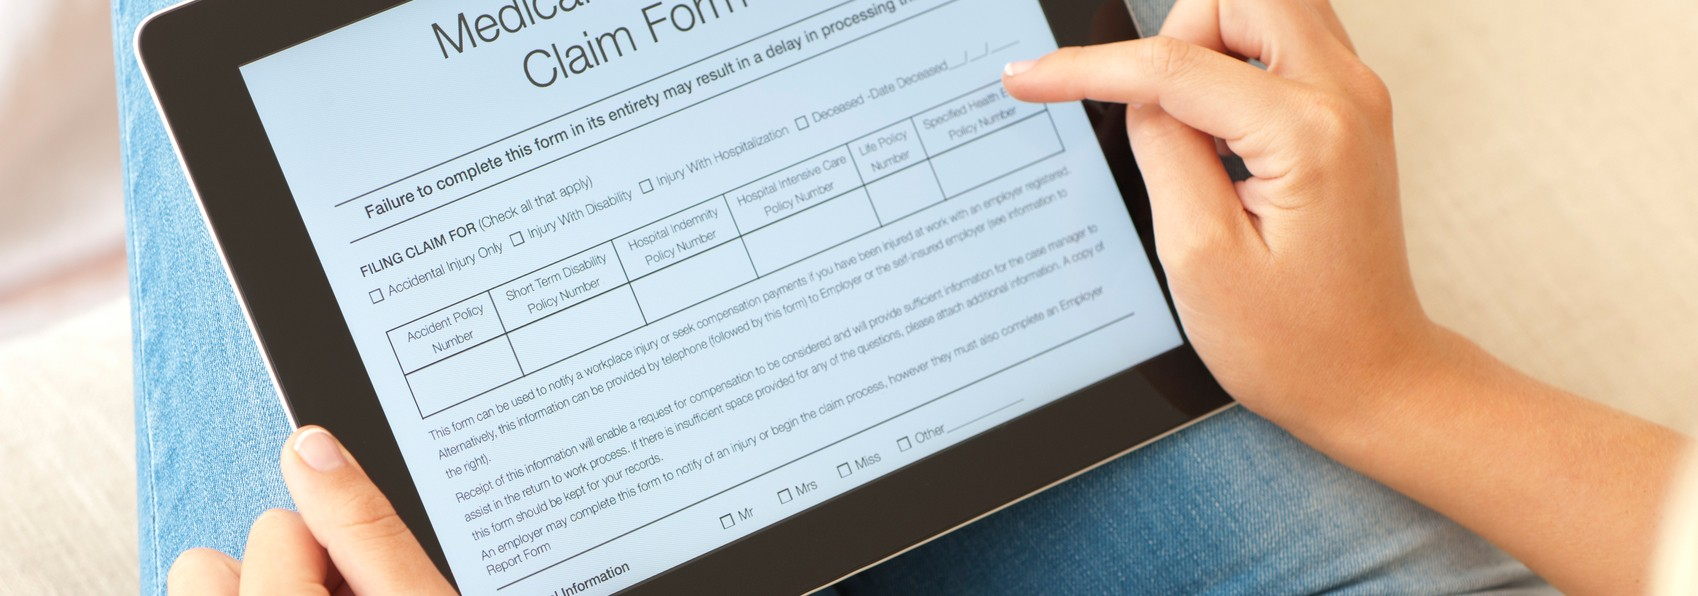 a woman reading medical claim form on table device